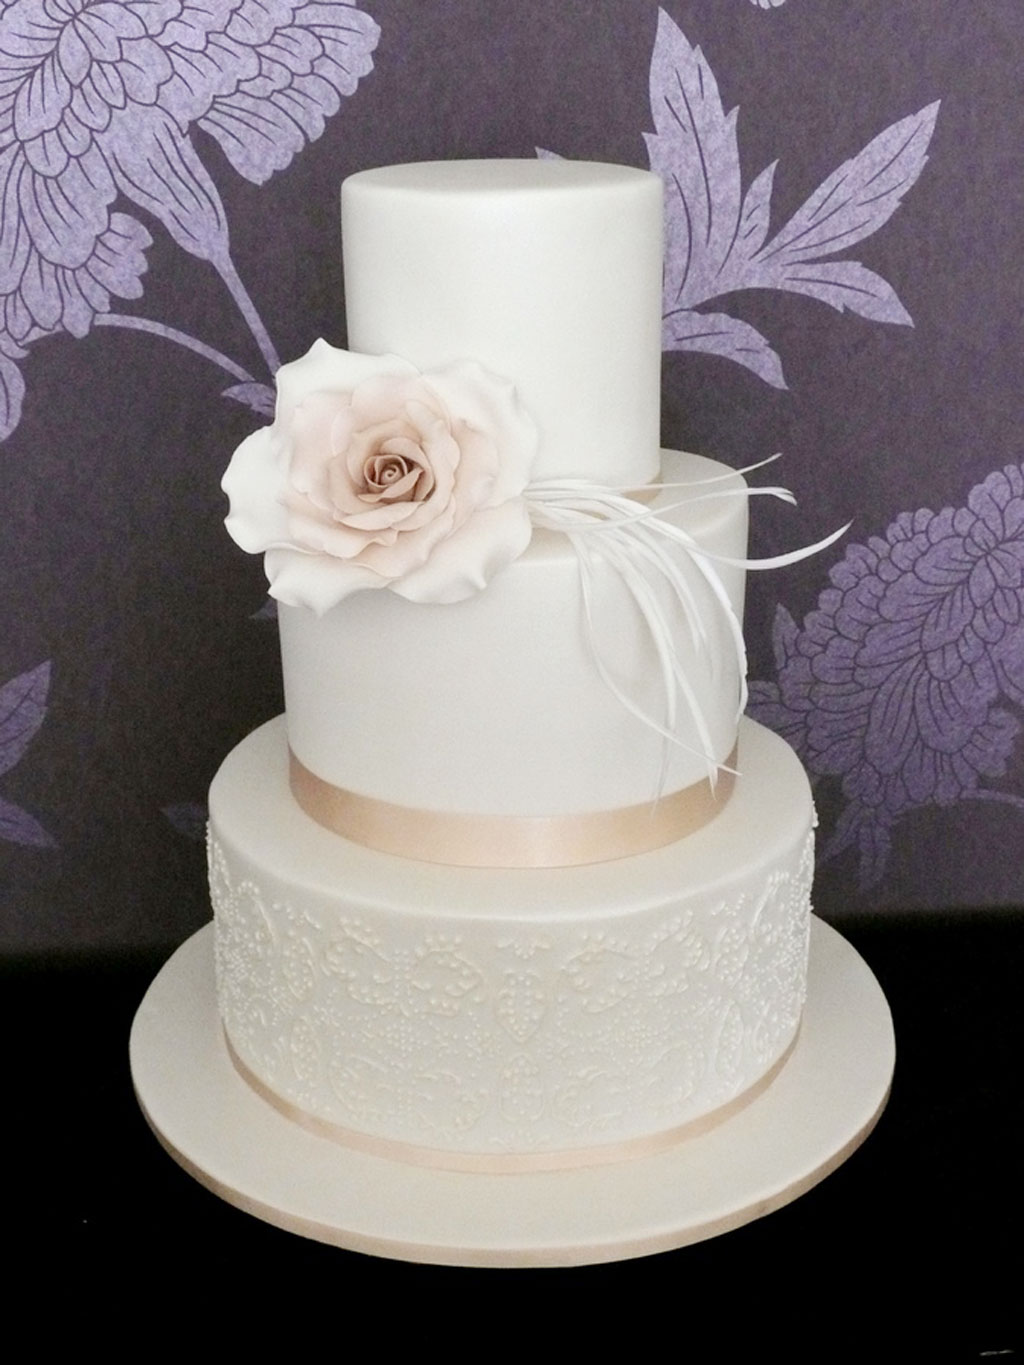 Triple layer wedding cake design 3 wedding cake cake for Wedding cake layer